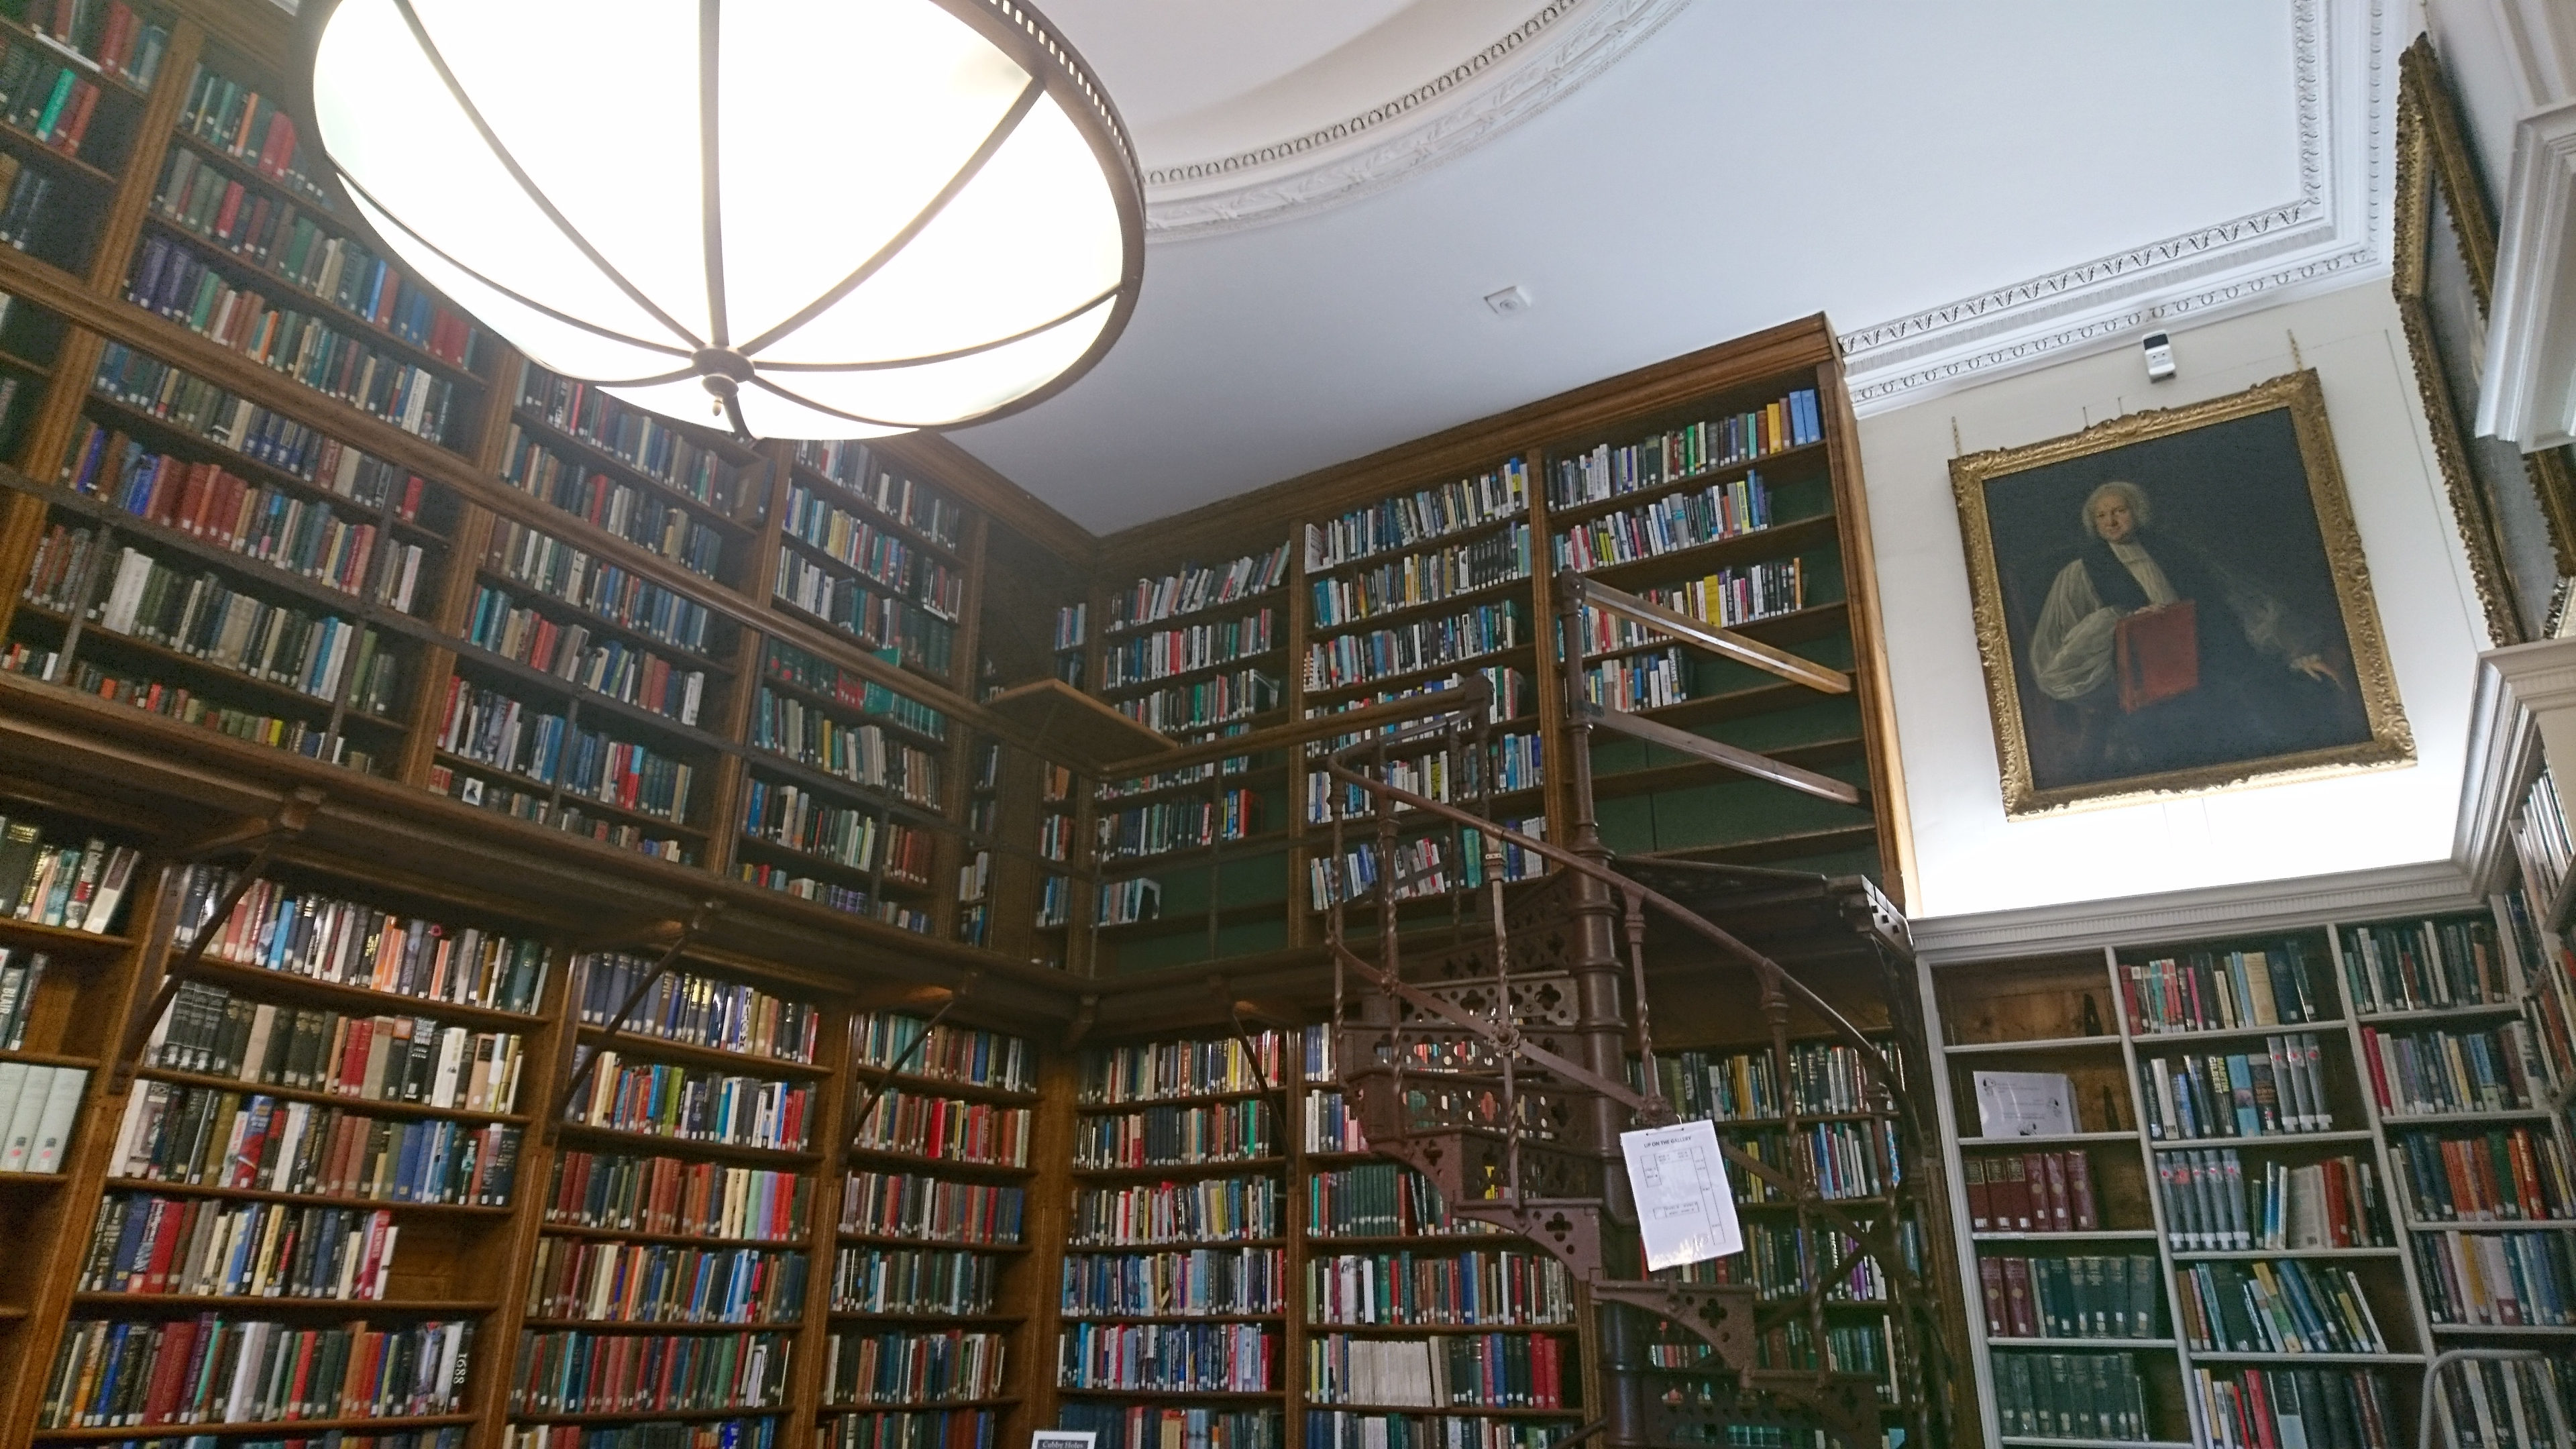 An image of a reading room at Christ Church College Library